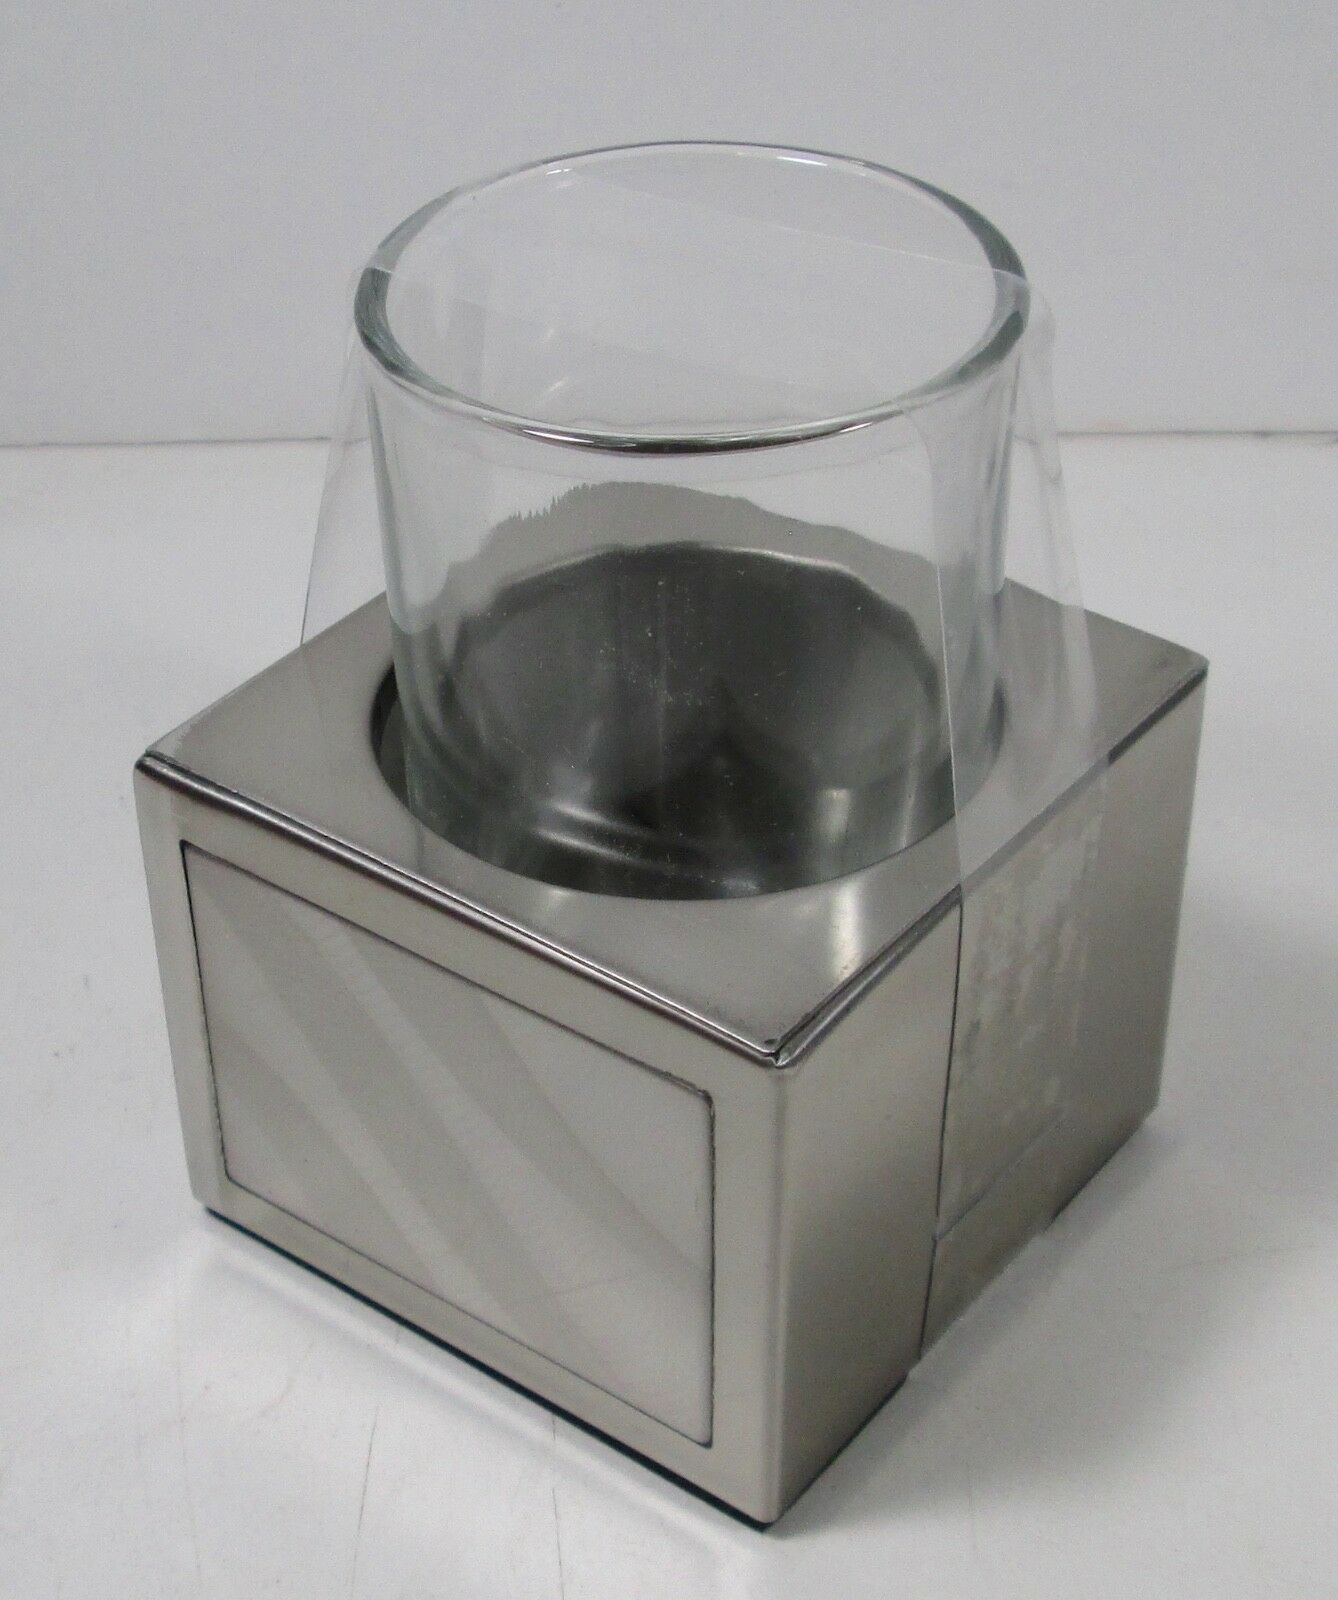 Primary image for Moire Stainless Steel Tumbler Holder with Glass (3.5 x 3 x 4.4)  CHF New